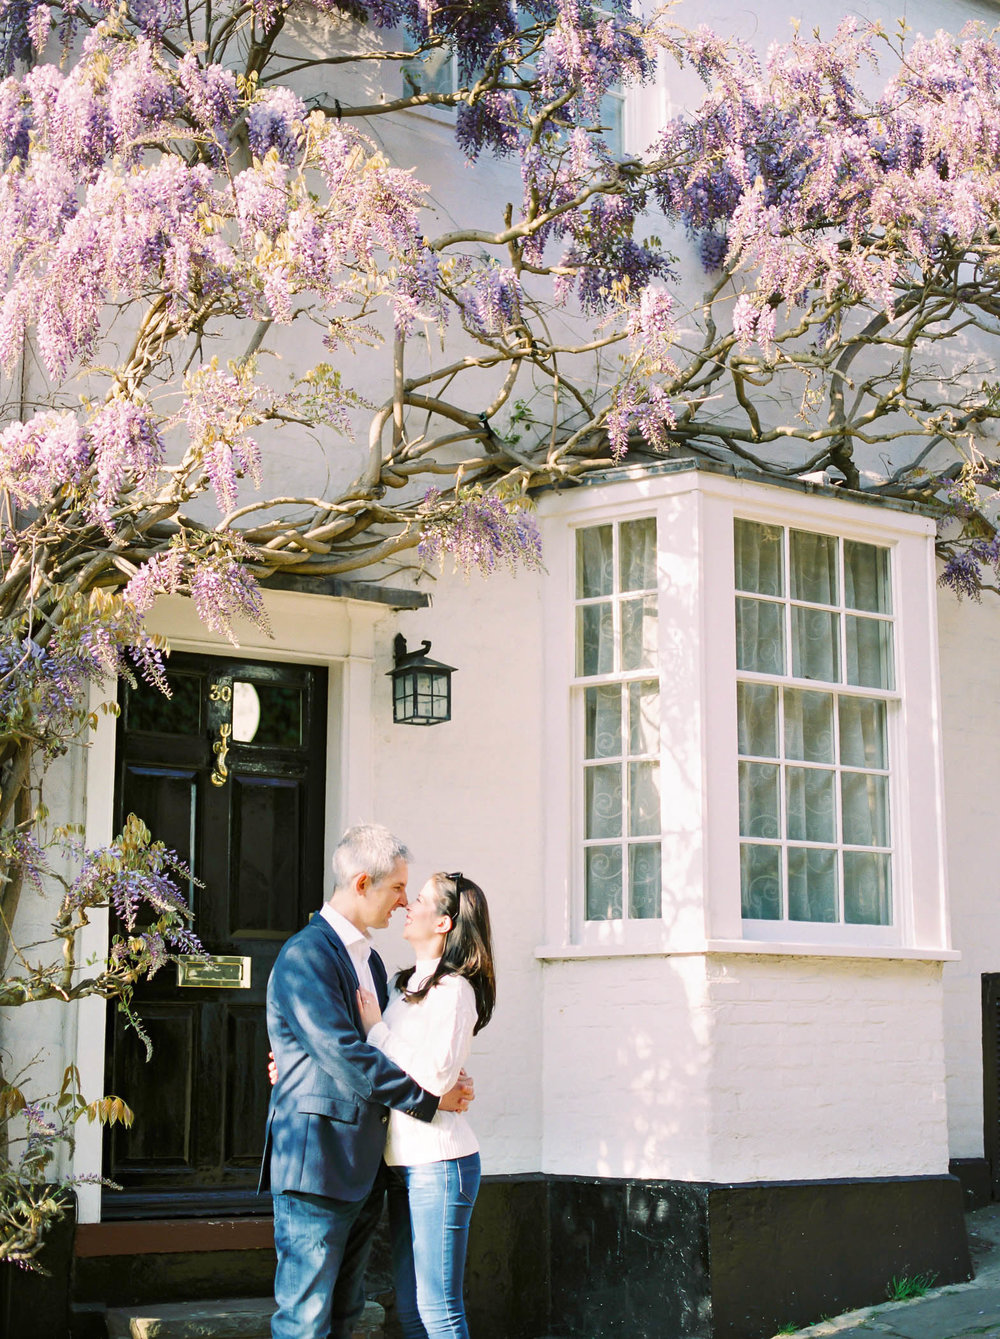 Amy O'Boyle Photography- Destination & UK Fine Art Film Wedding Photographer- Rye Engagement Shoot-1.jpg